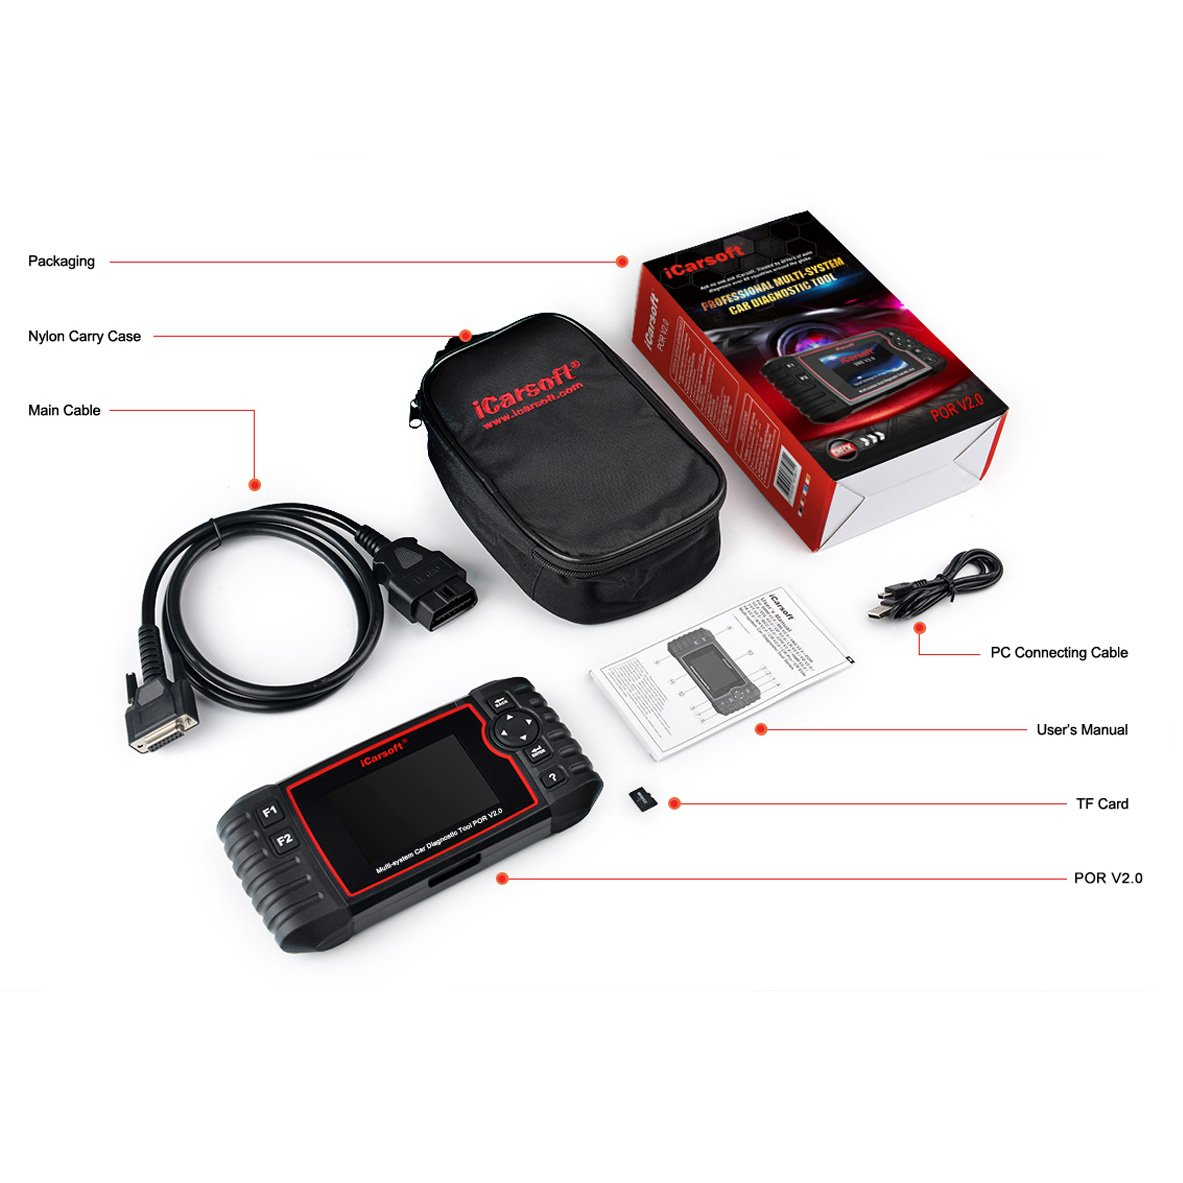 iCarsoft Auto Diagnostic Scanner POR V2.0 for Porsche with ABS Scan,Oil Service Reset ect by iCarsoft (Image #4)